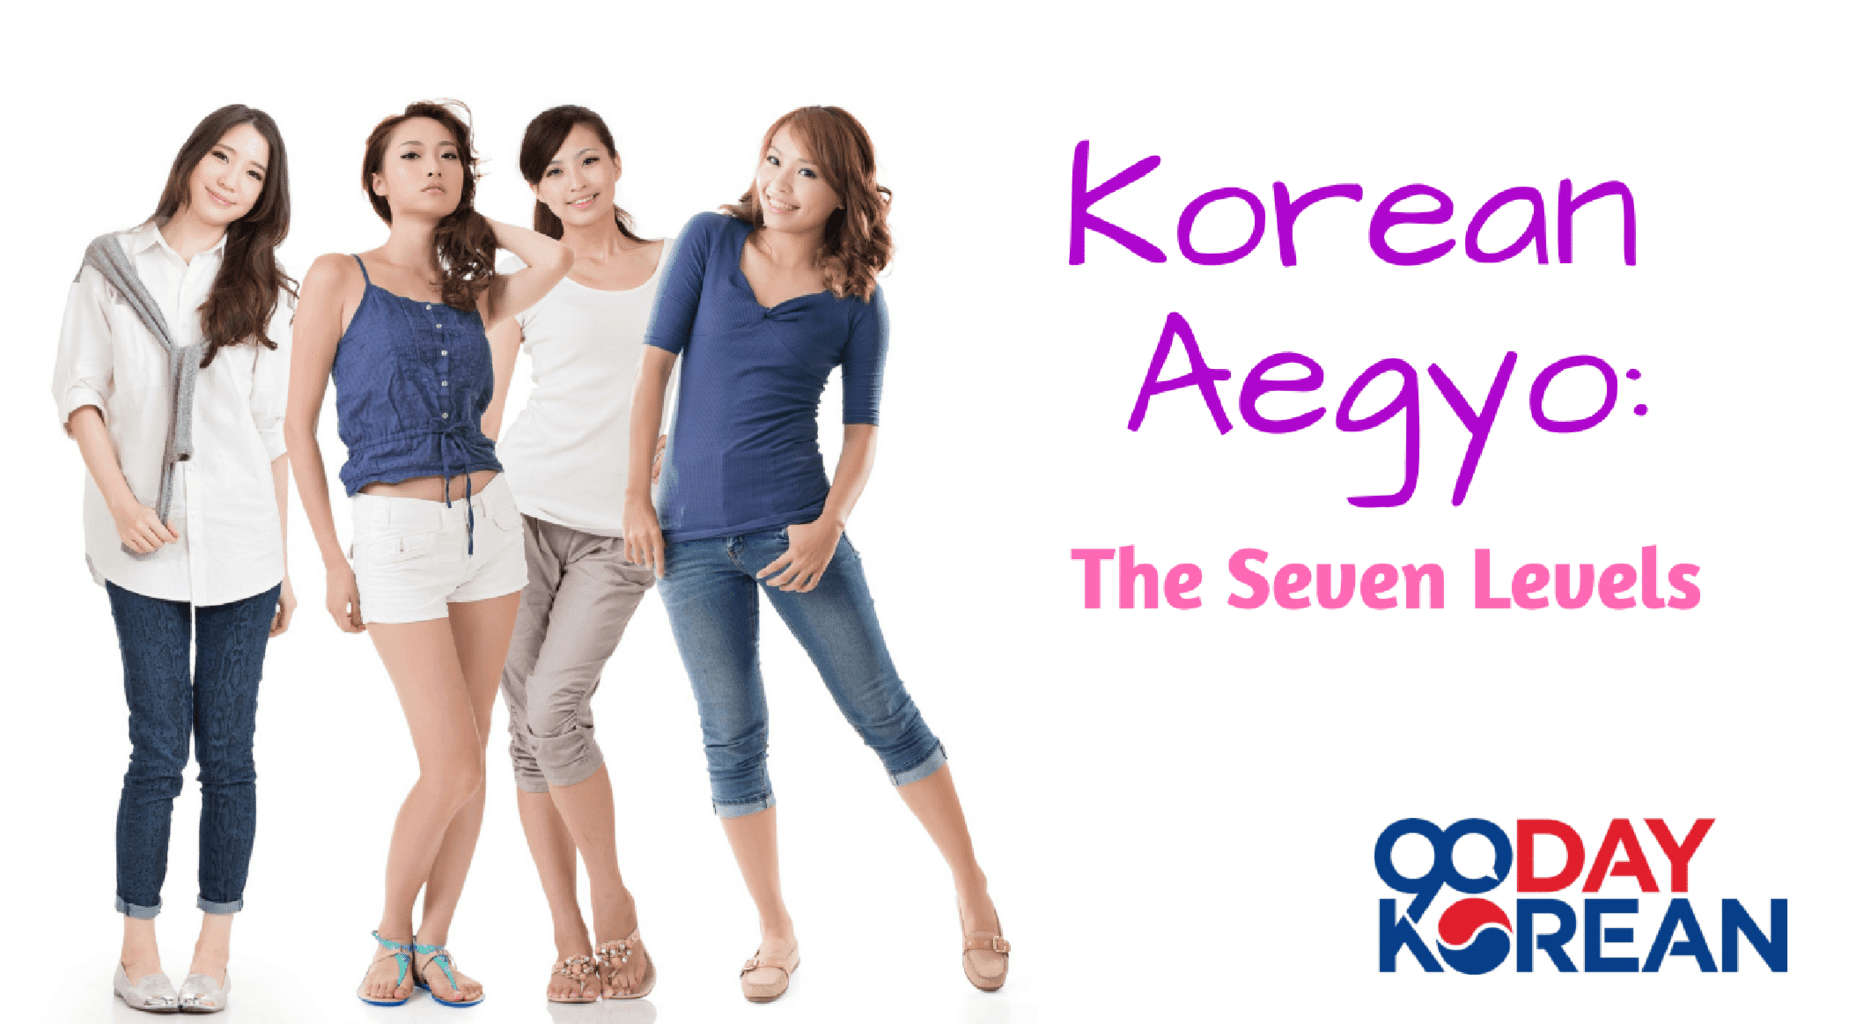 Korean Aegyo: The Seven Levels